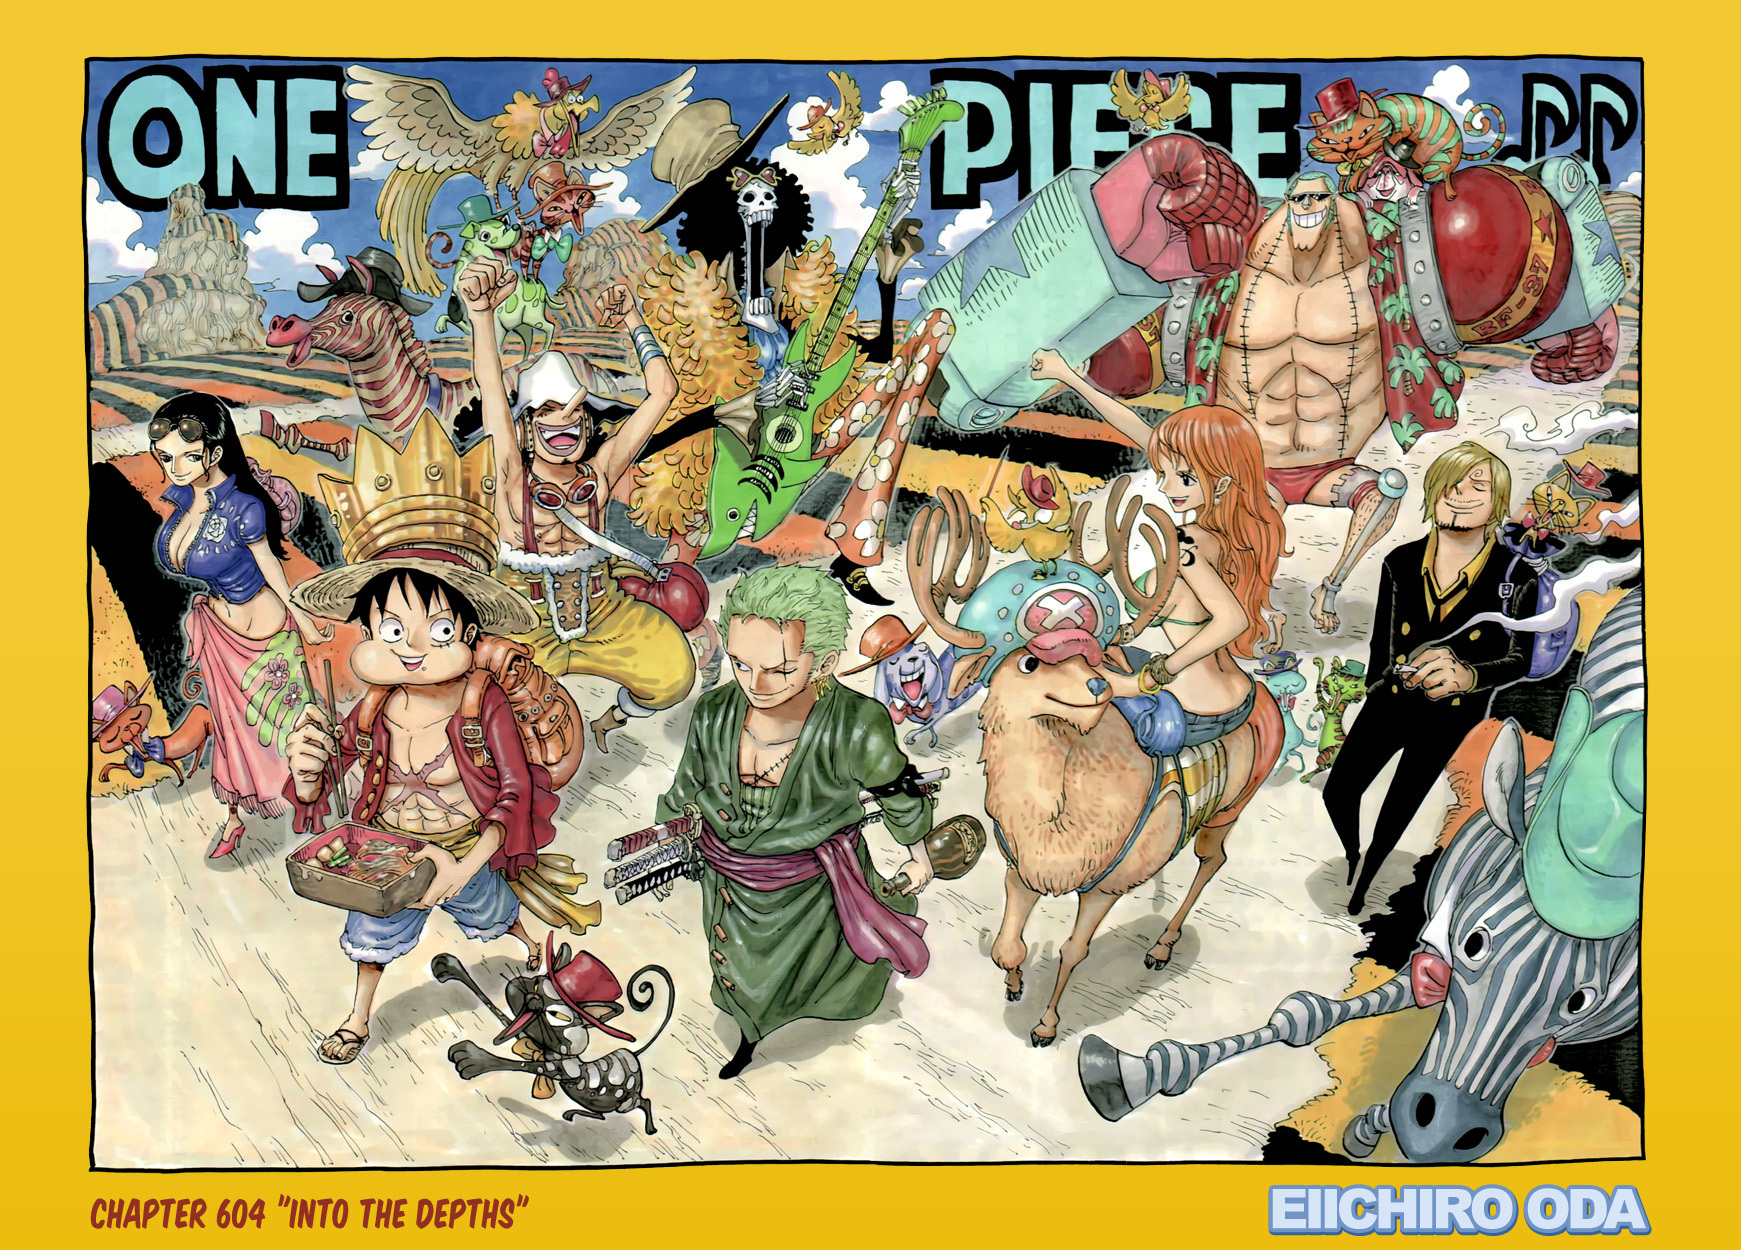 The strawhats after the timeskip